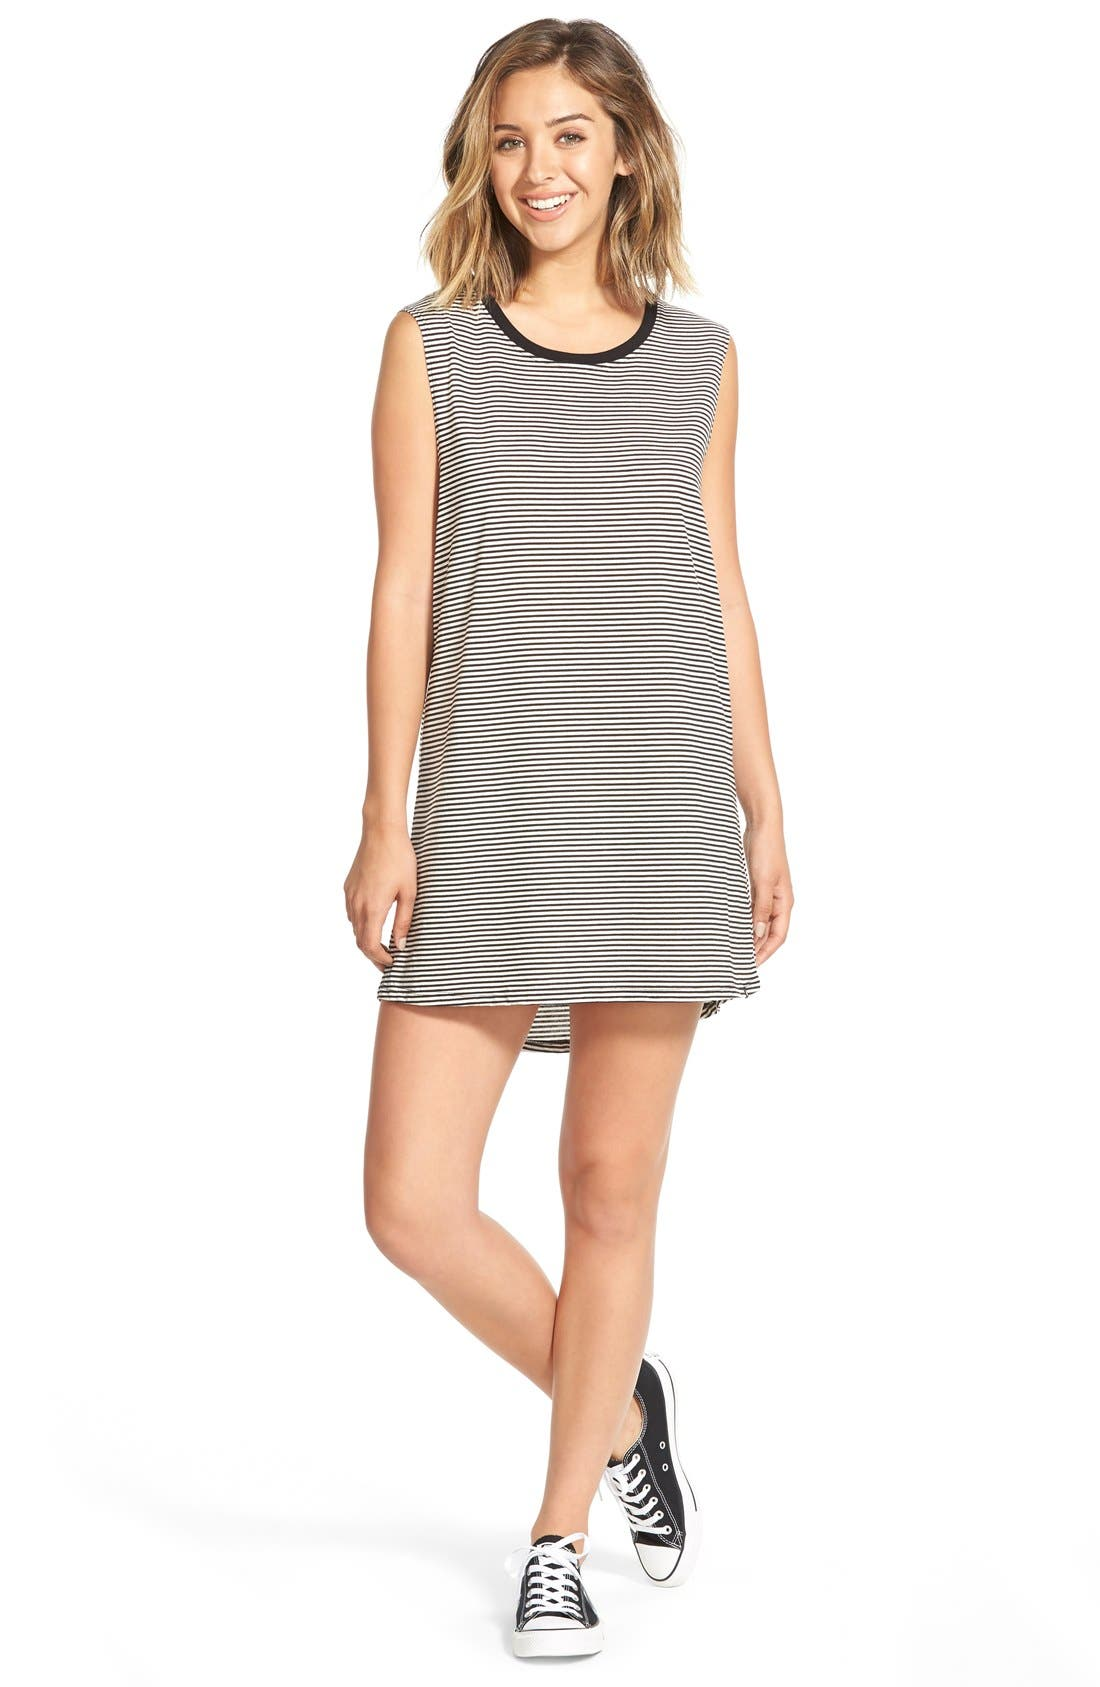 Alternate Image 1 Selected - Volcom 'Lived In' Muscle Tank Dress